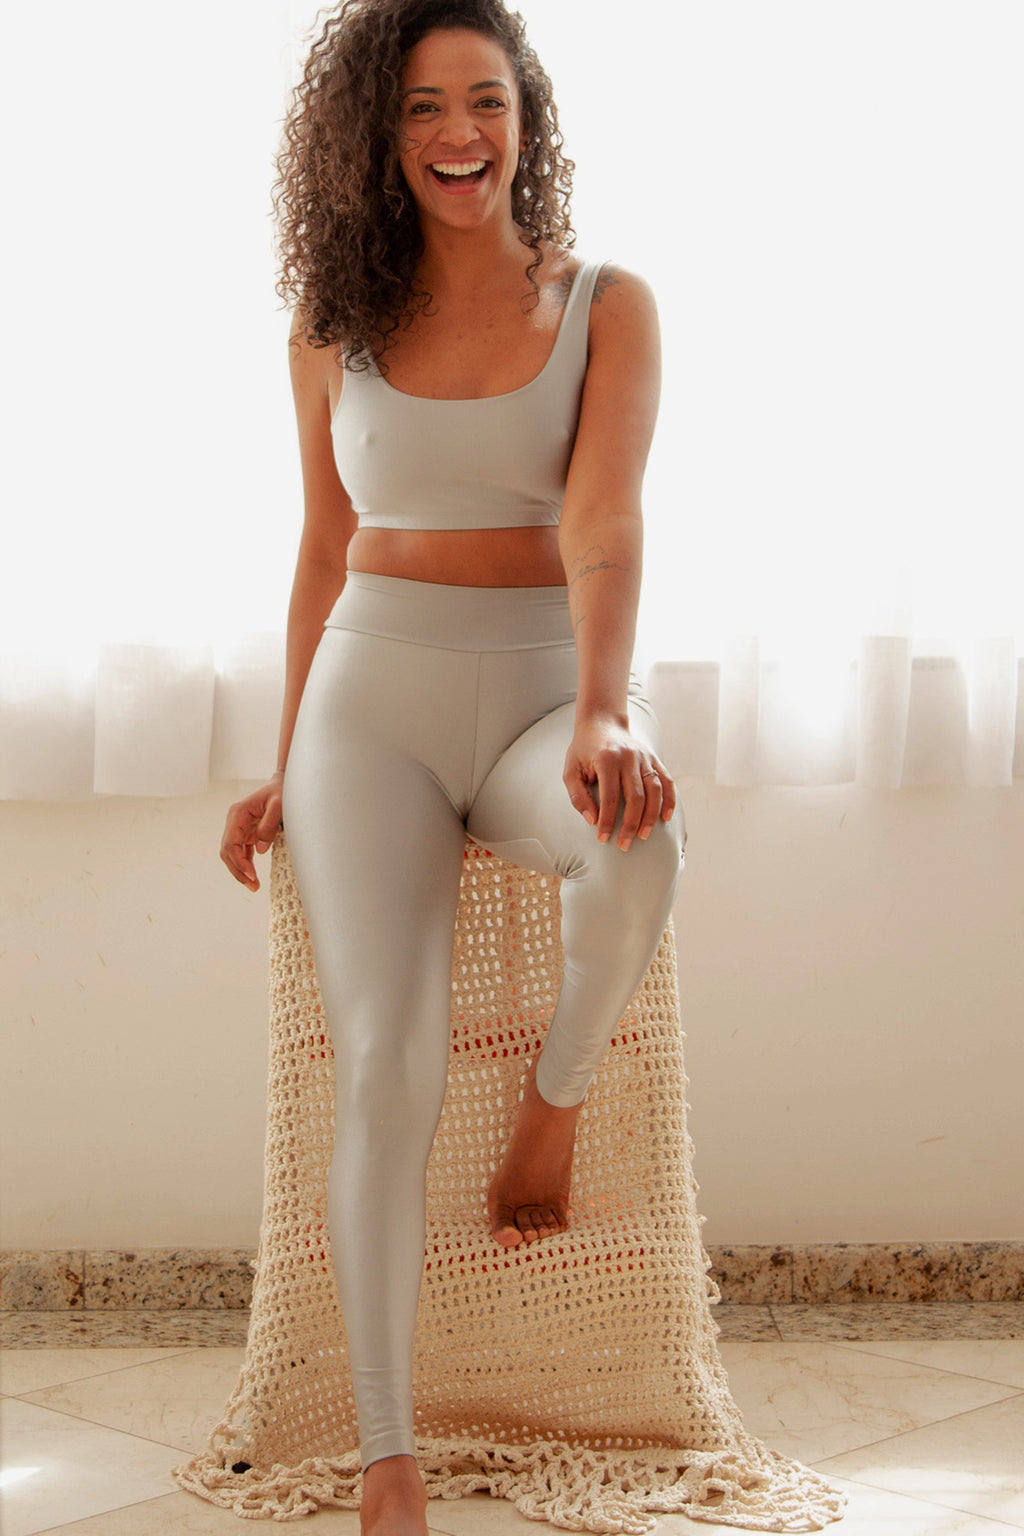 urban sky legging - with waistband